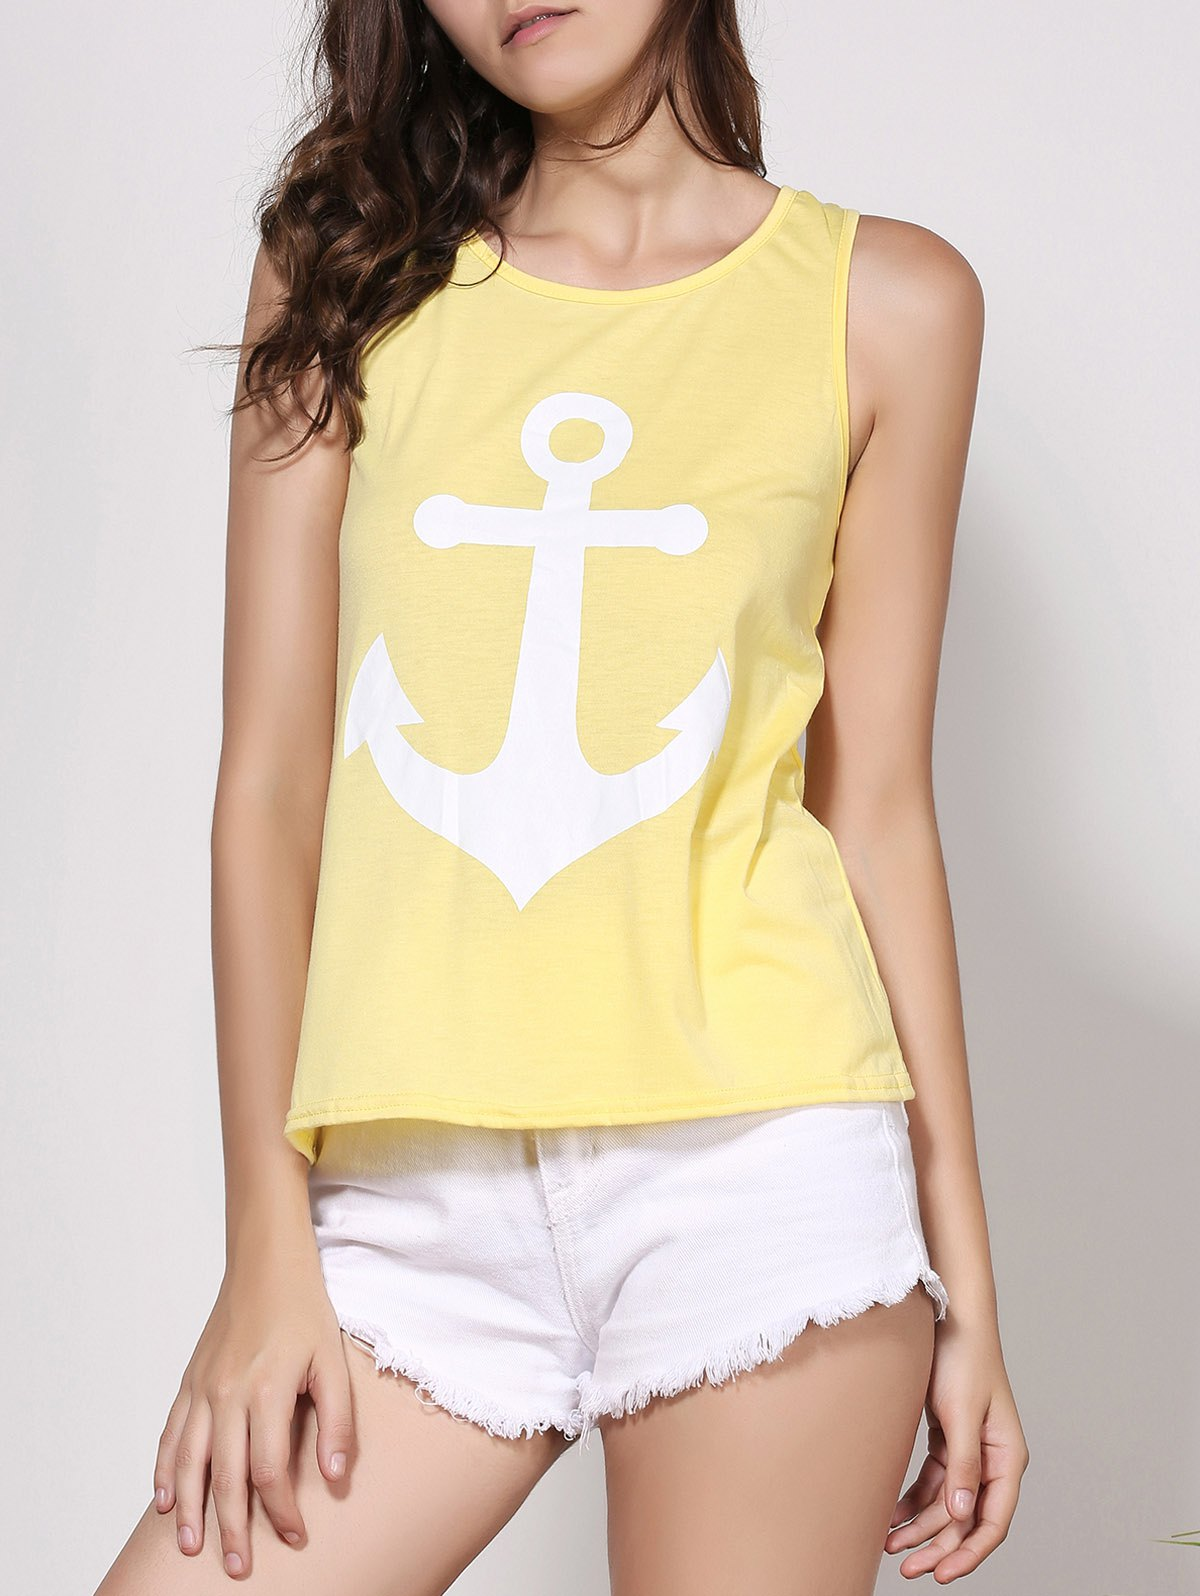 Stylish Scoop Neck Sleeveless Bowknot Embellished Printed Women's Tank Top - YELLOW S